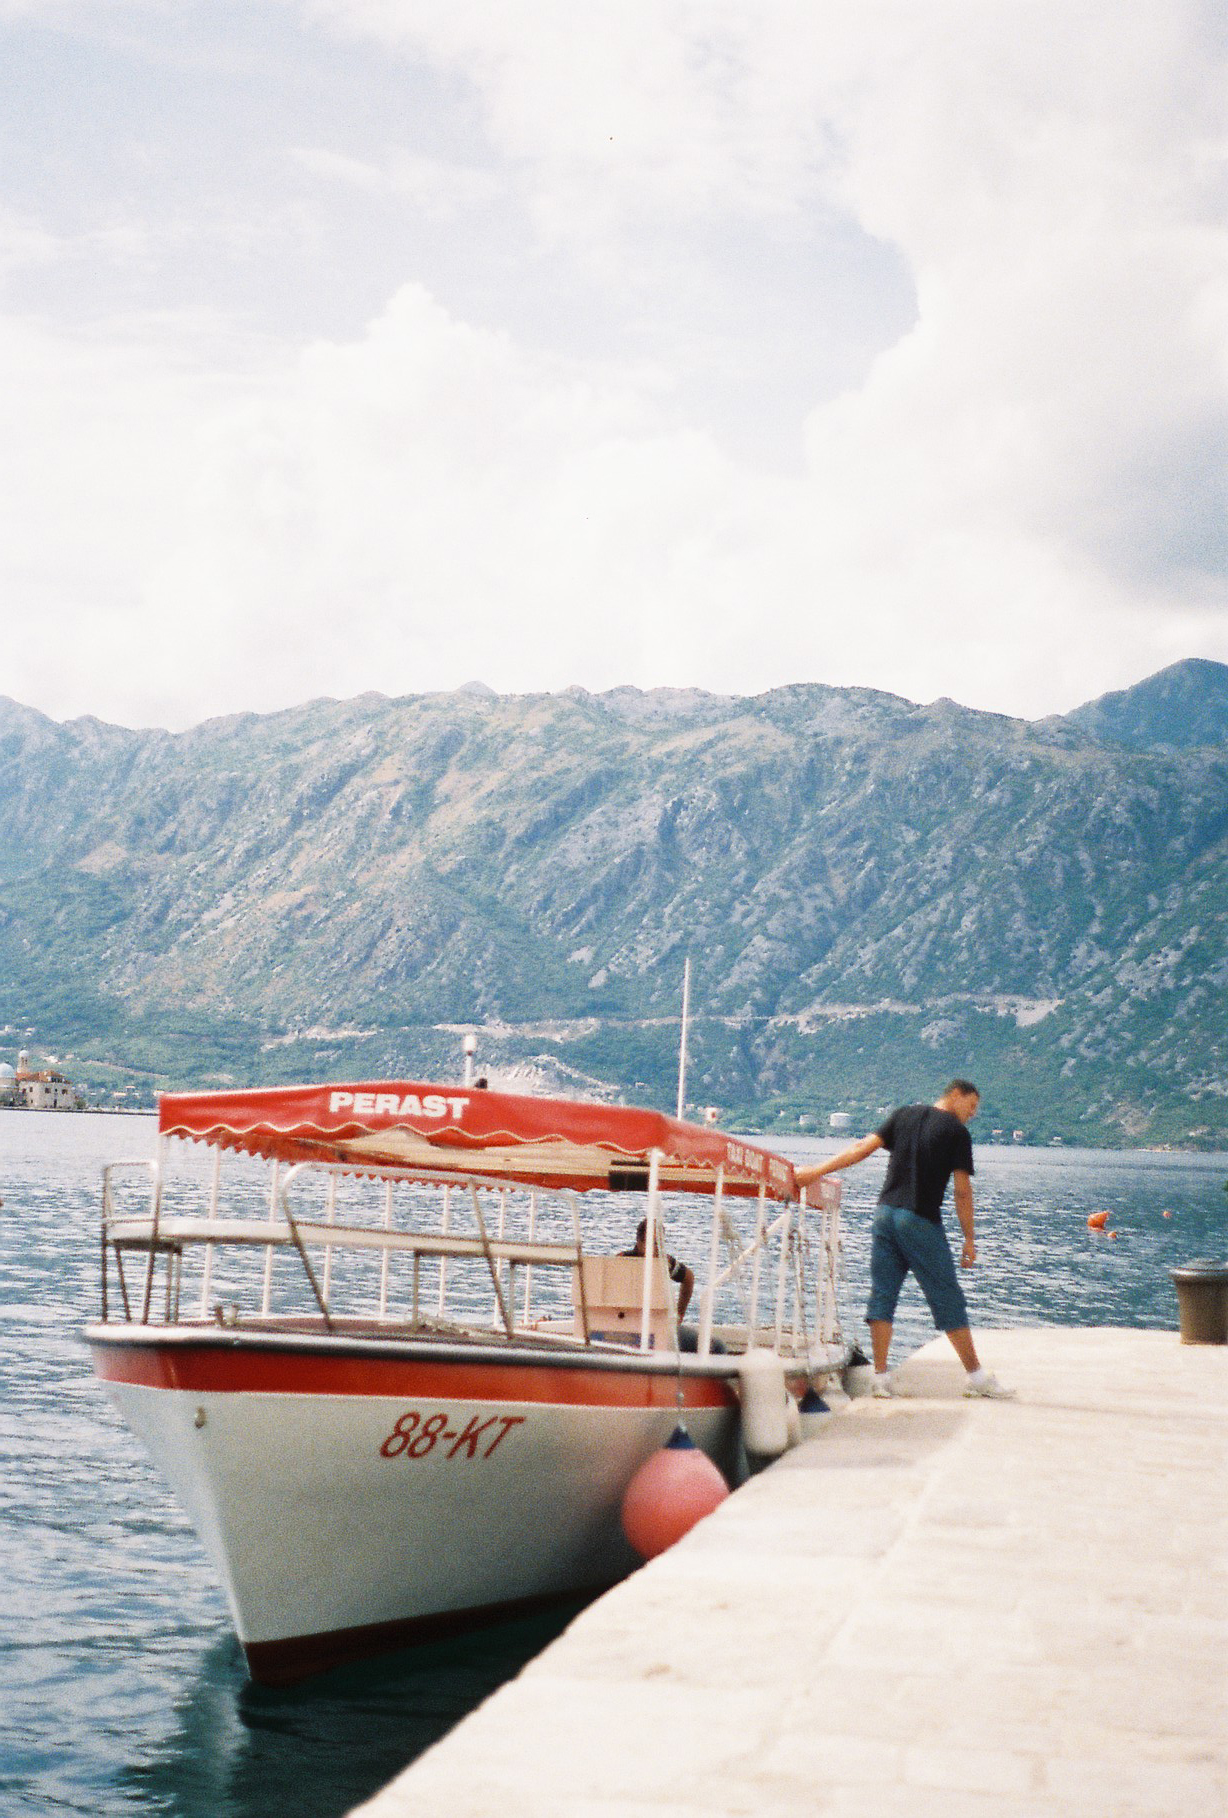 Water Taxi Perast